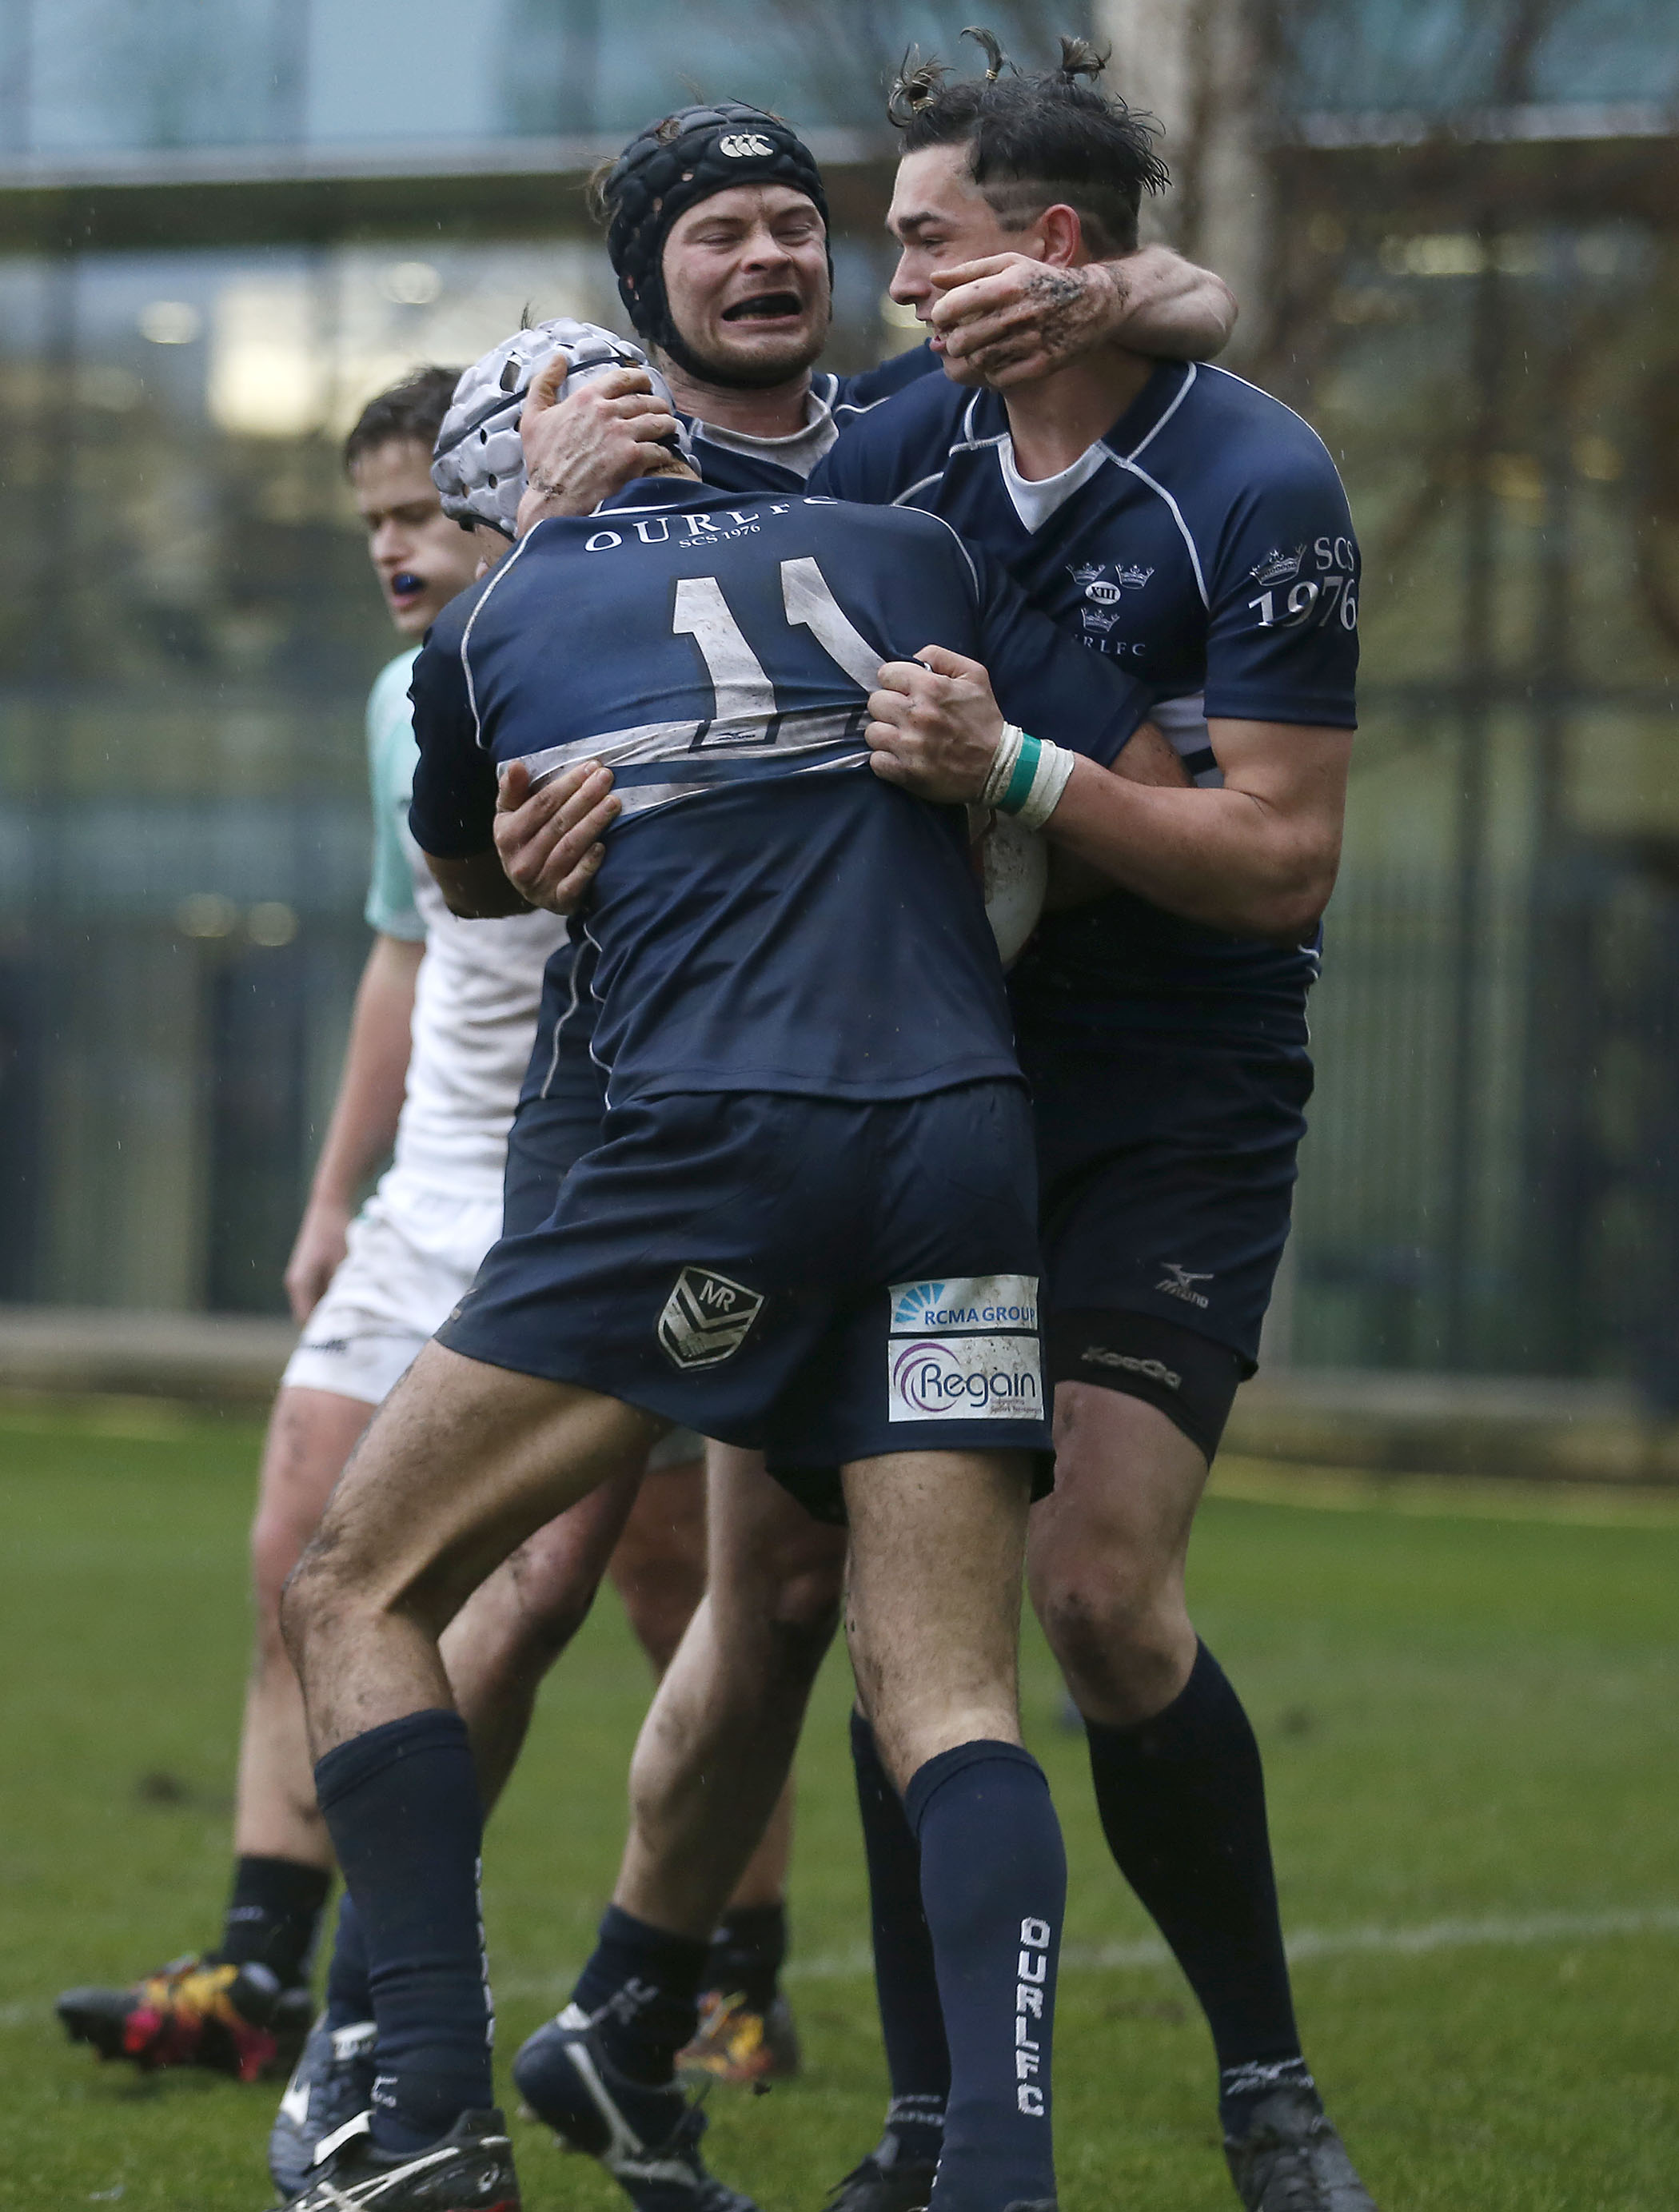 Marco Hiscox (no 11) is mobbed after his try for Oxford during the RCMA Varsity Rugby League game between Cambridge University and Oxford University at the HAC Ground, Moorgate, London on Fri Mar 9, 2018